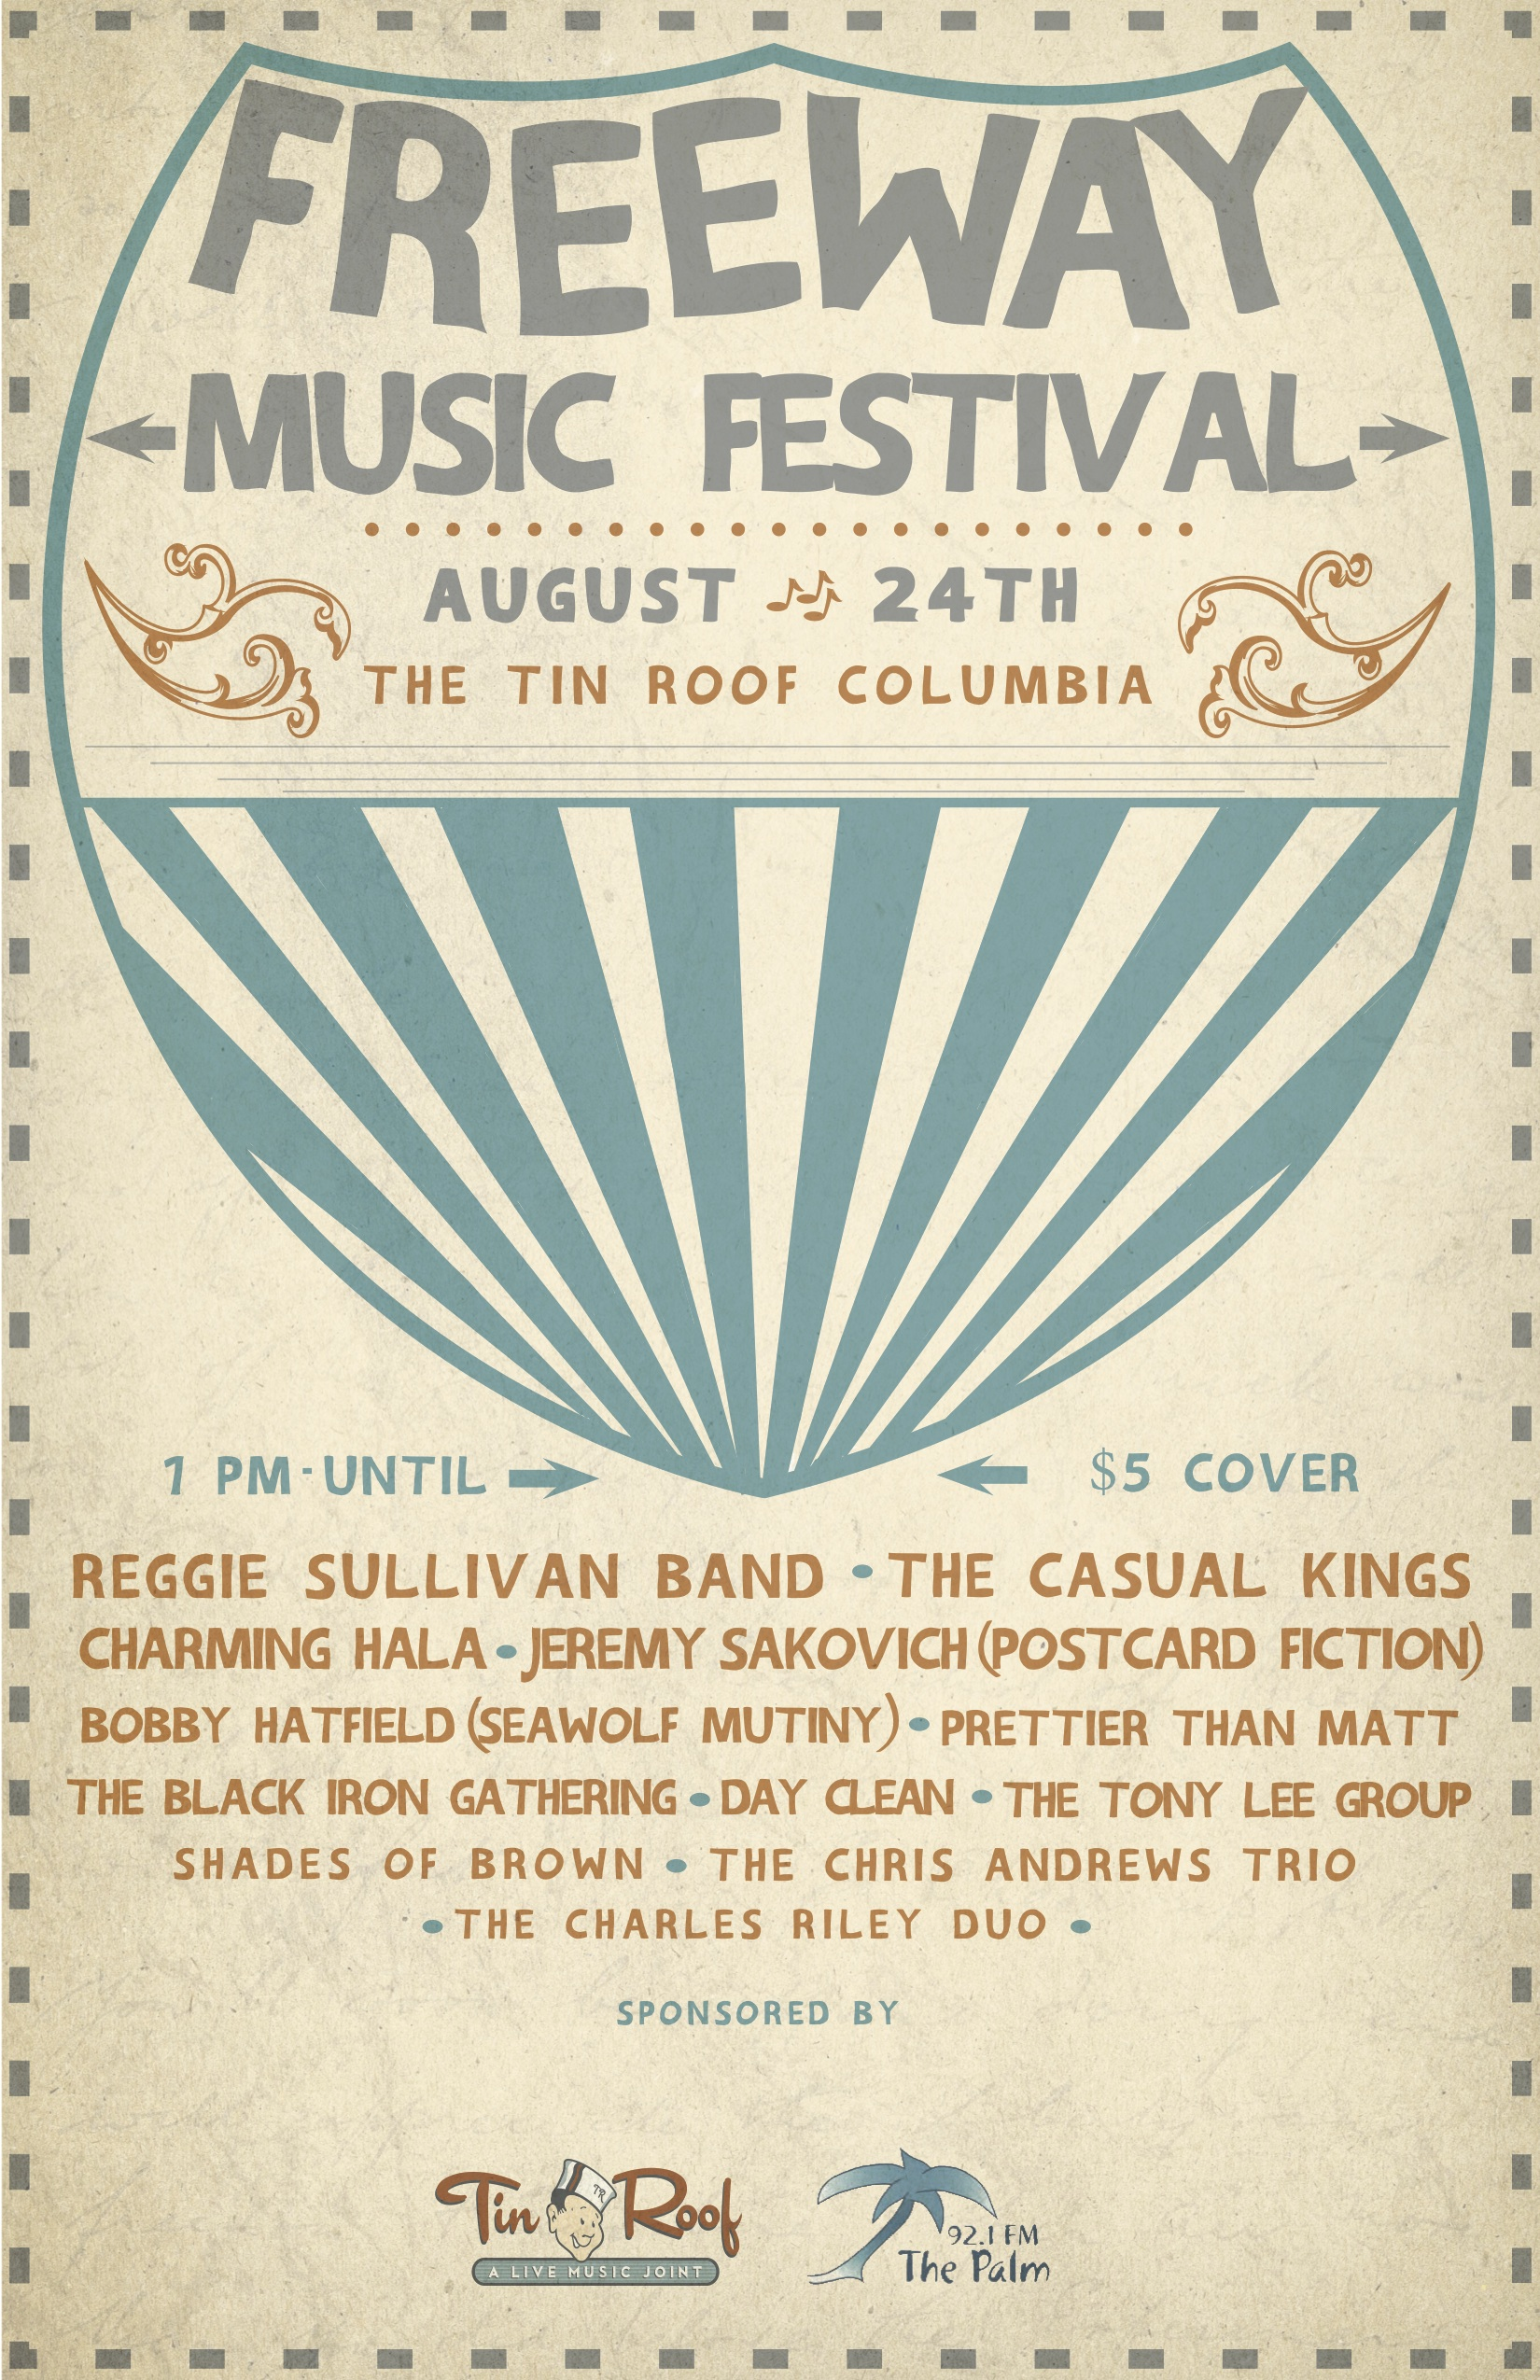 Freeway Music Festival at the Heart of the Scene